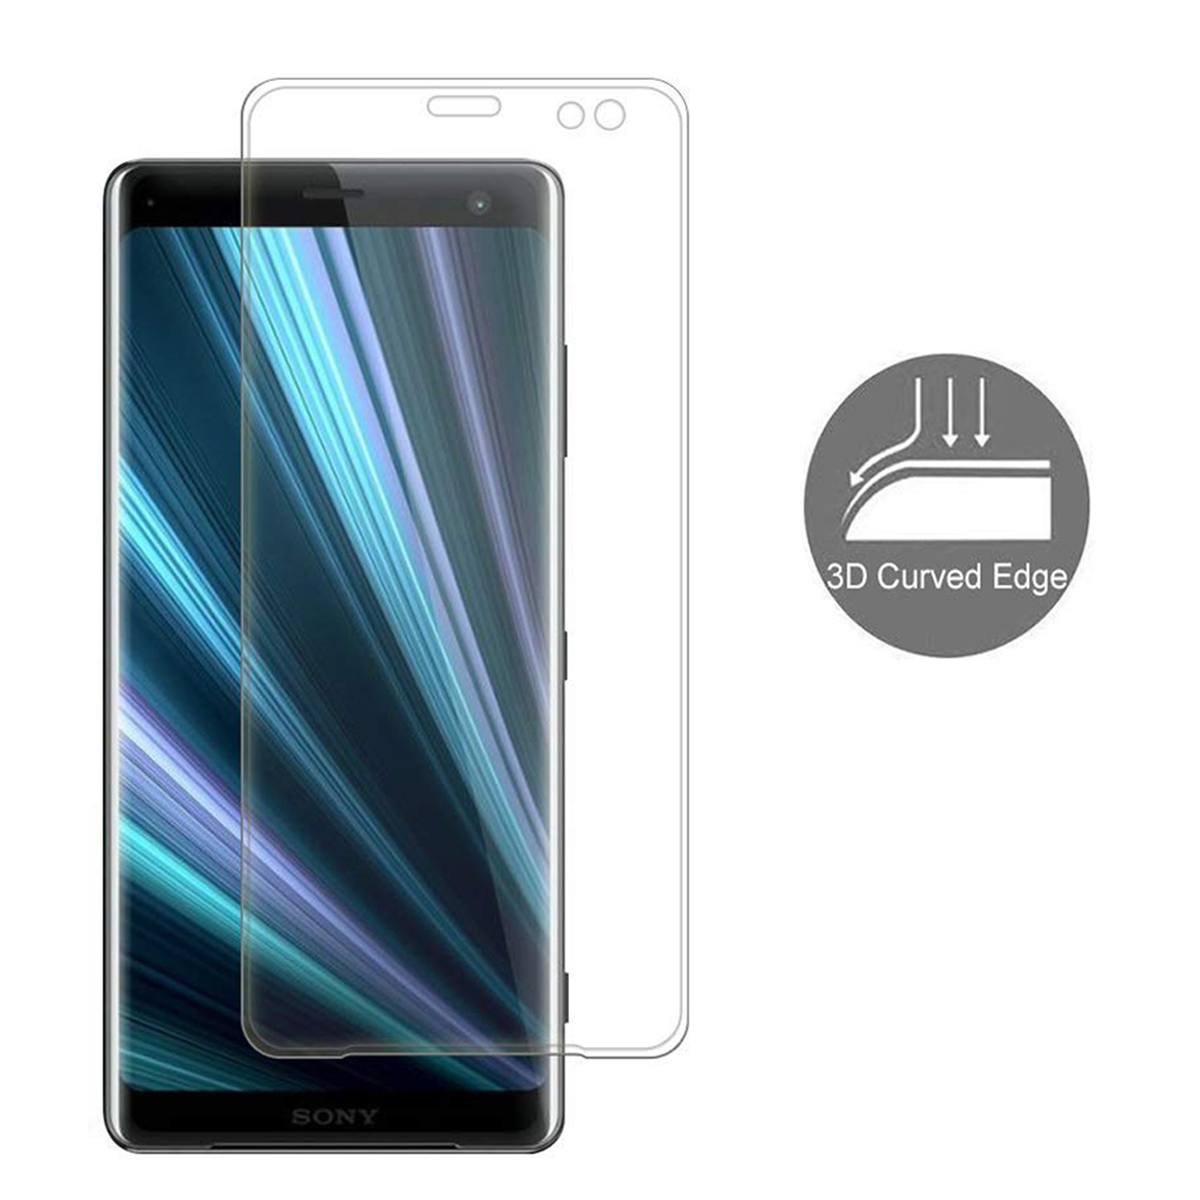 Details about For SONY Xperia XZ3 3D Curved Edge Full Cover Tempered Glass  Screen Protector